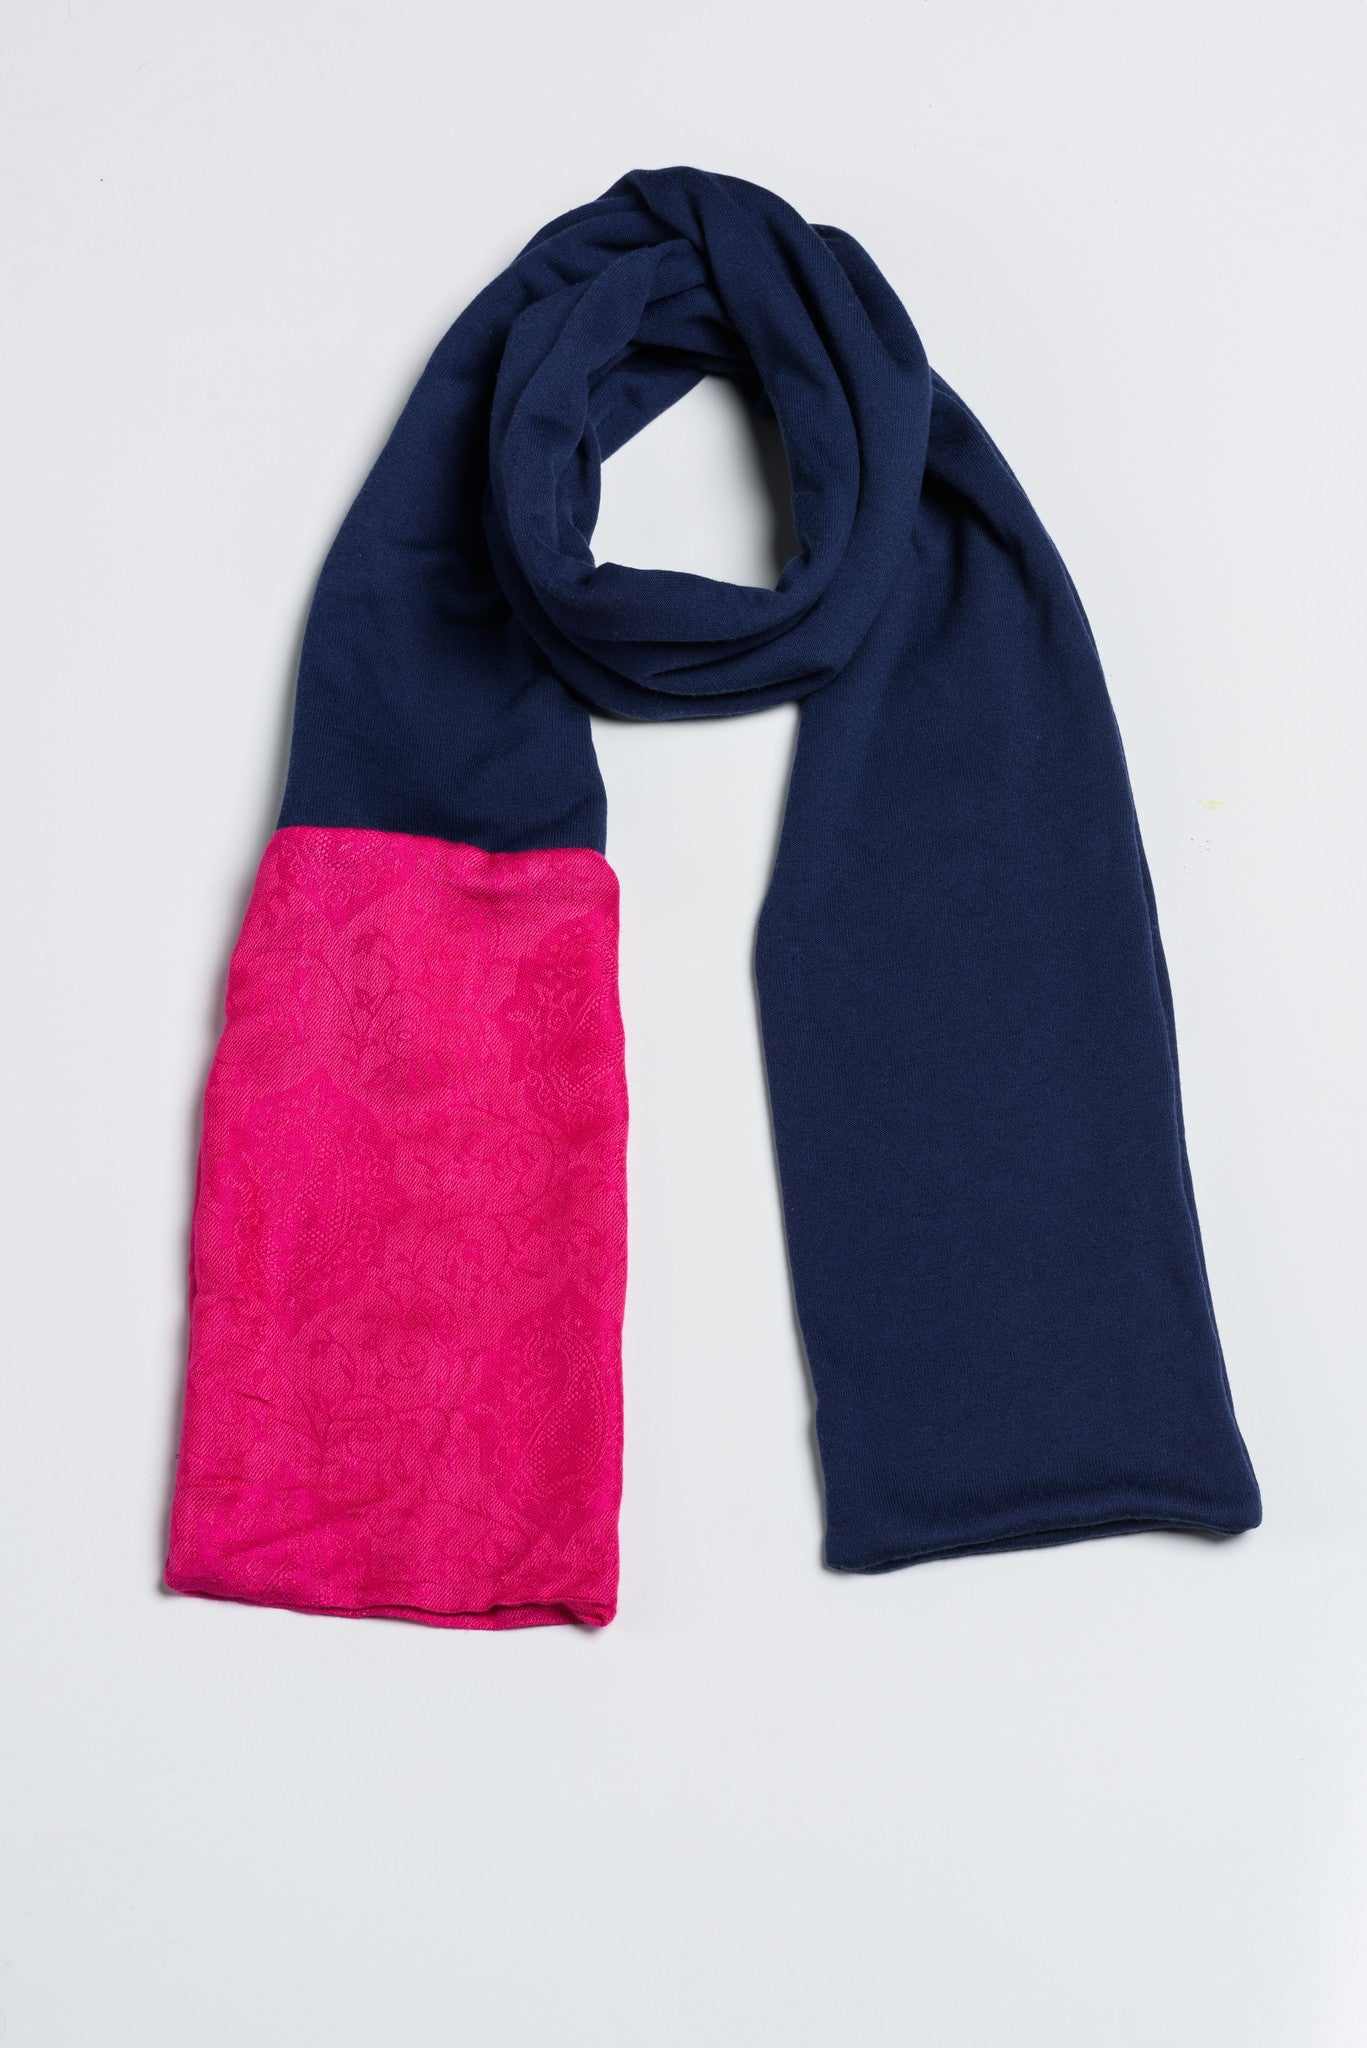 Handmade Navy and Pink with Afghan Pashmina - FLYING SCARFS